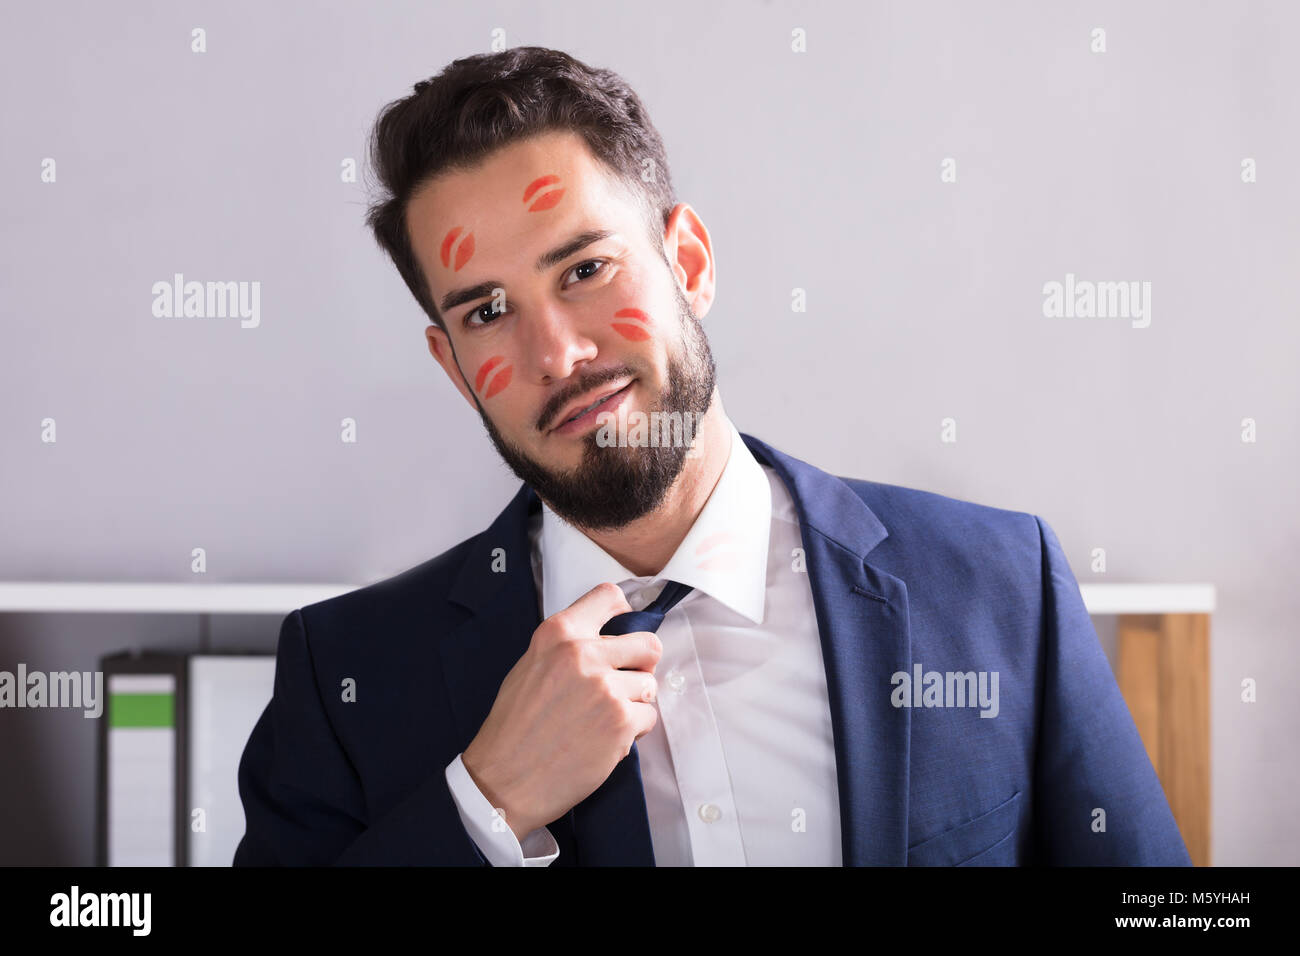 Close-up Of A Young Businessman With Lipstick Kiss Marks On Face - Stock Image